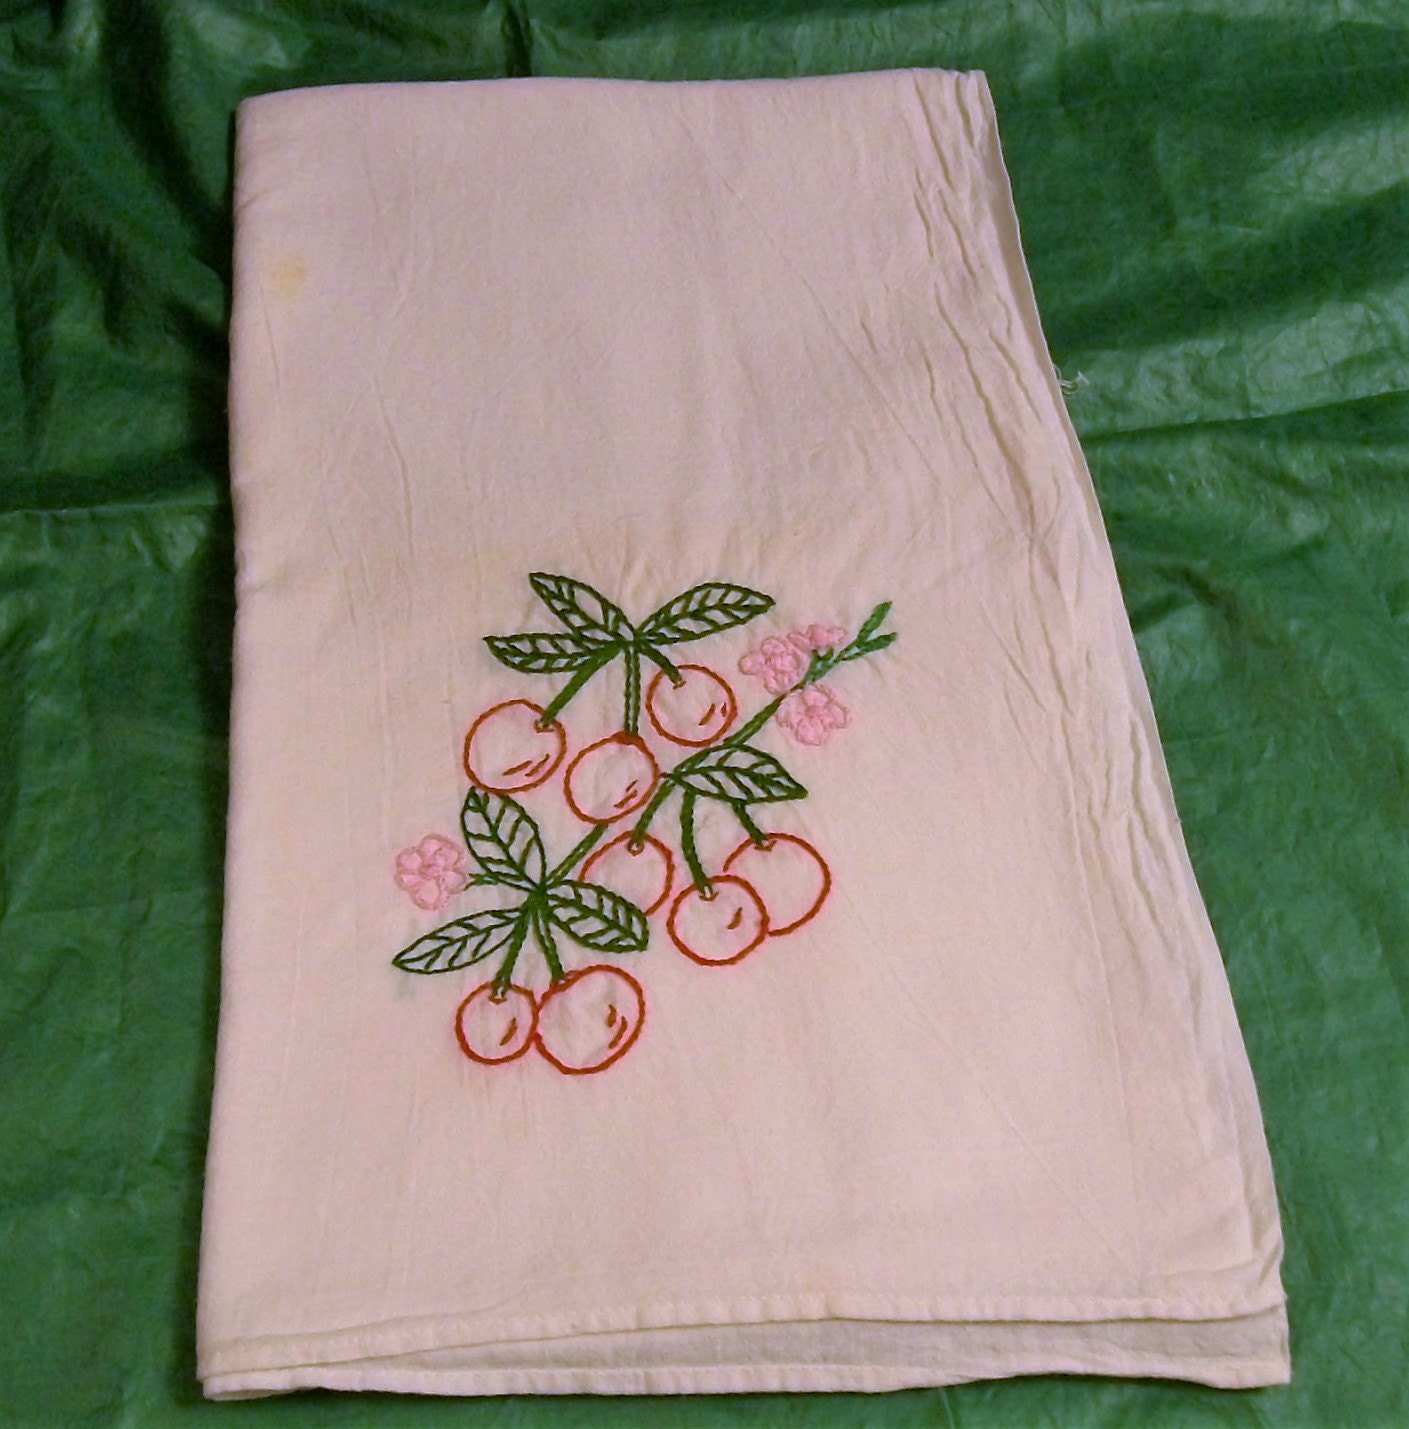 Embroidered Towels Custom: Hand Embroidered Dish Towels Red Cherries Dish Towel With